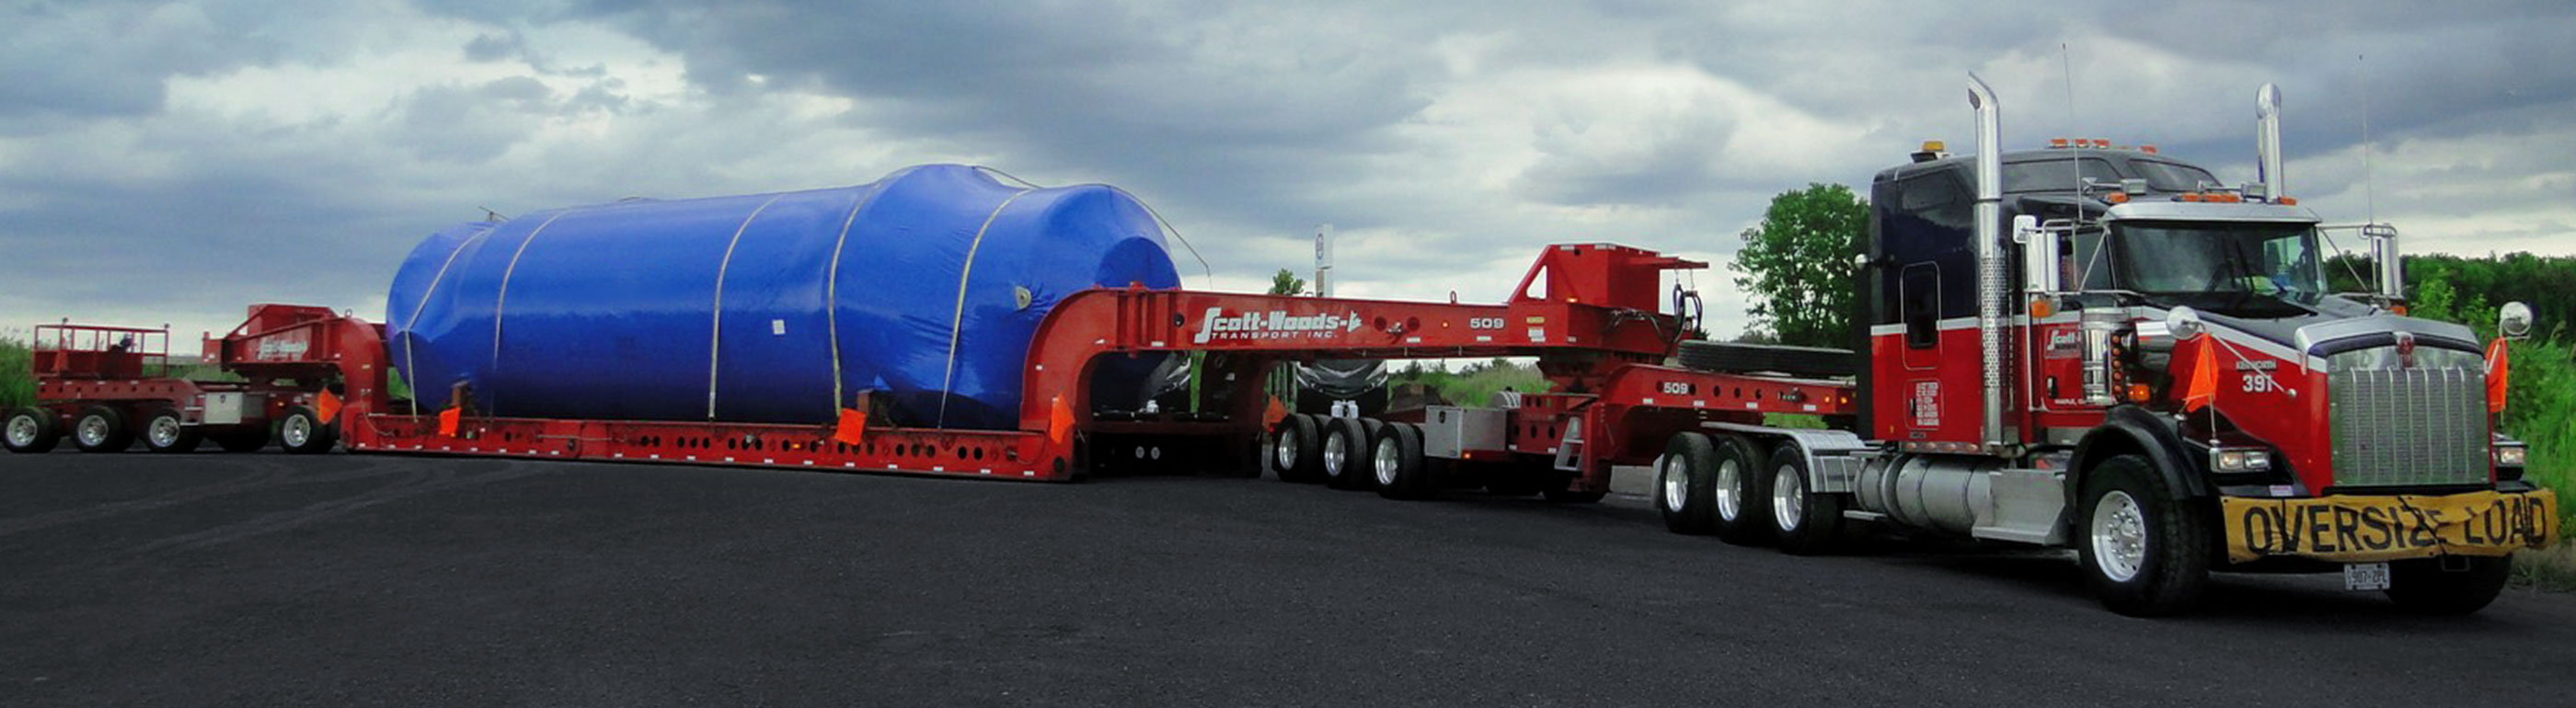 Scott Woods heavy haul truck transporting oversized equipment